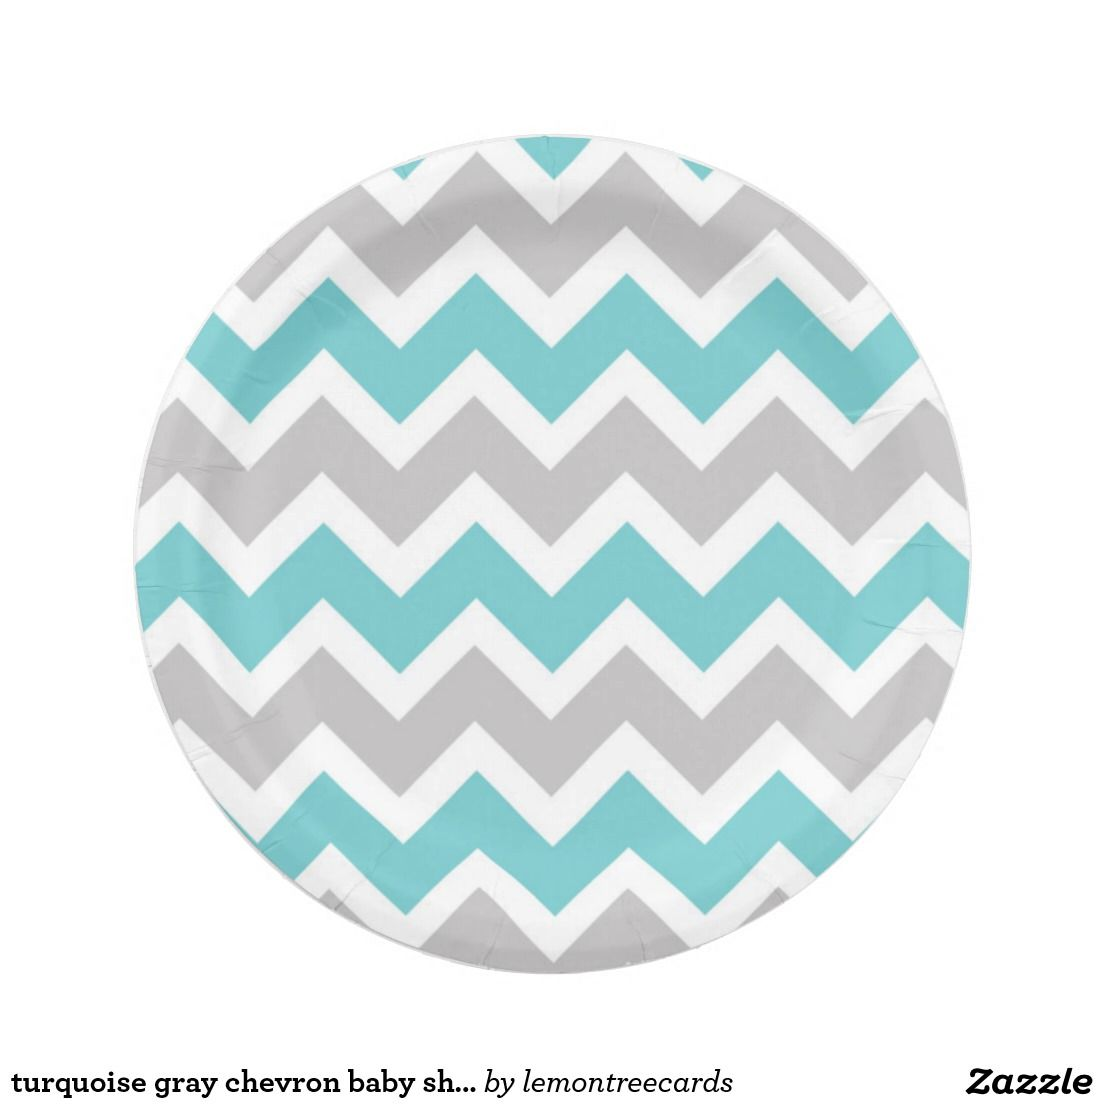 Turquoise gray chevron baby shower bridal party paper plate  sc 1 st  Pinterest & Turquoise gray chevron baby shower bridal party paper plate ...